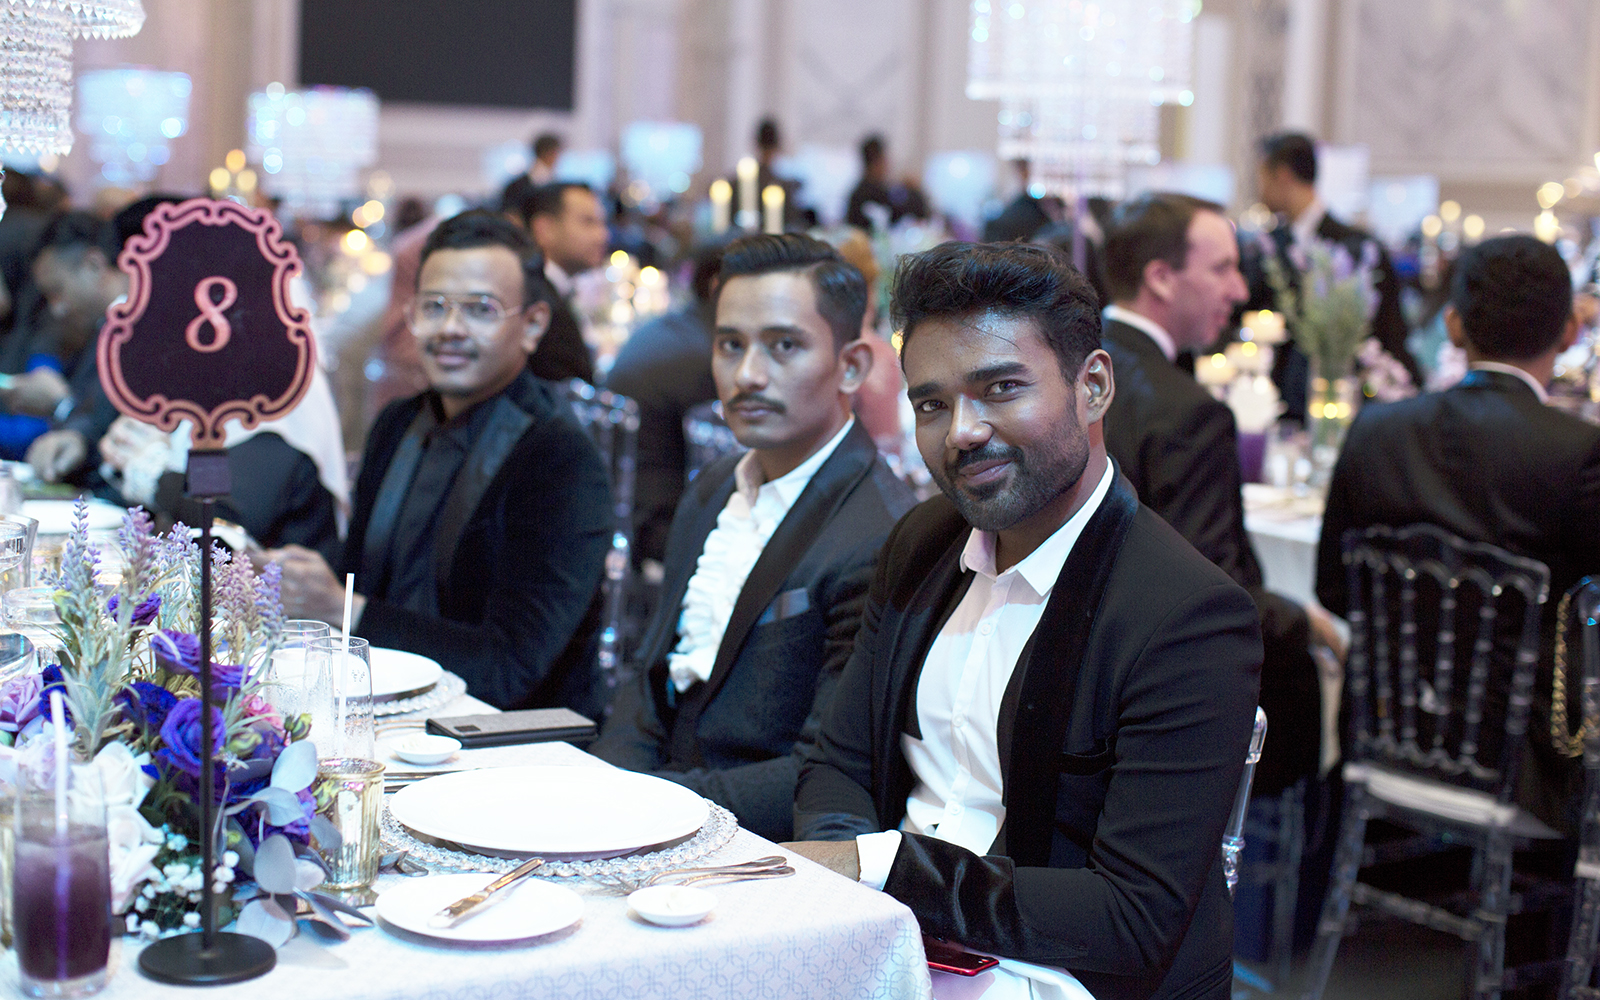 Designers of Dr Fazliana's dress, Rizman Nordin and Wan Ruzaini